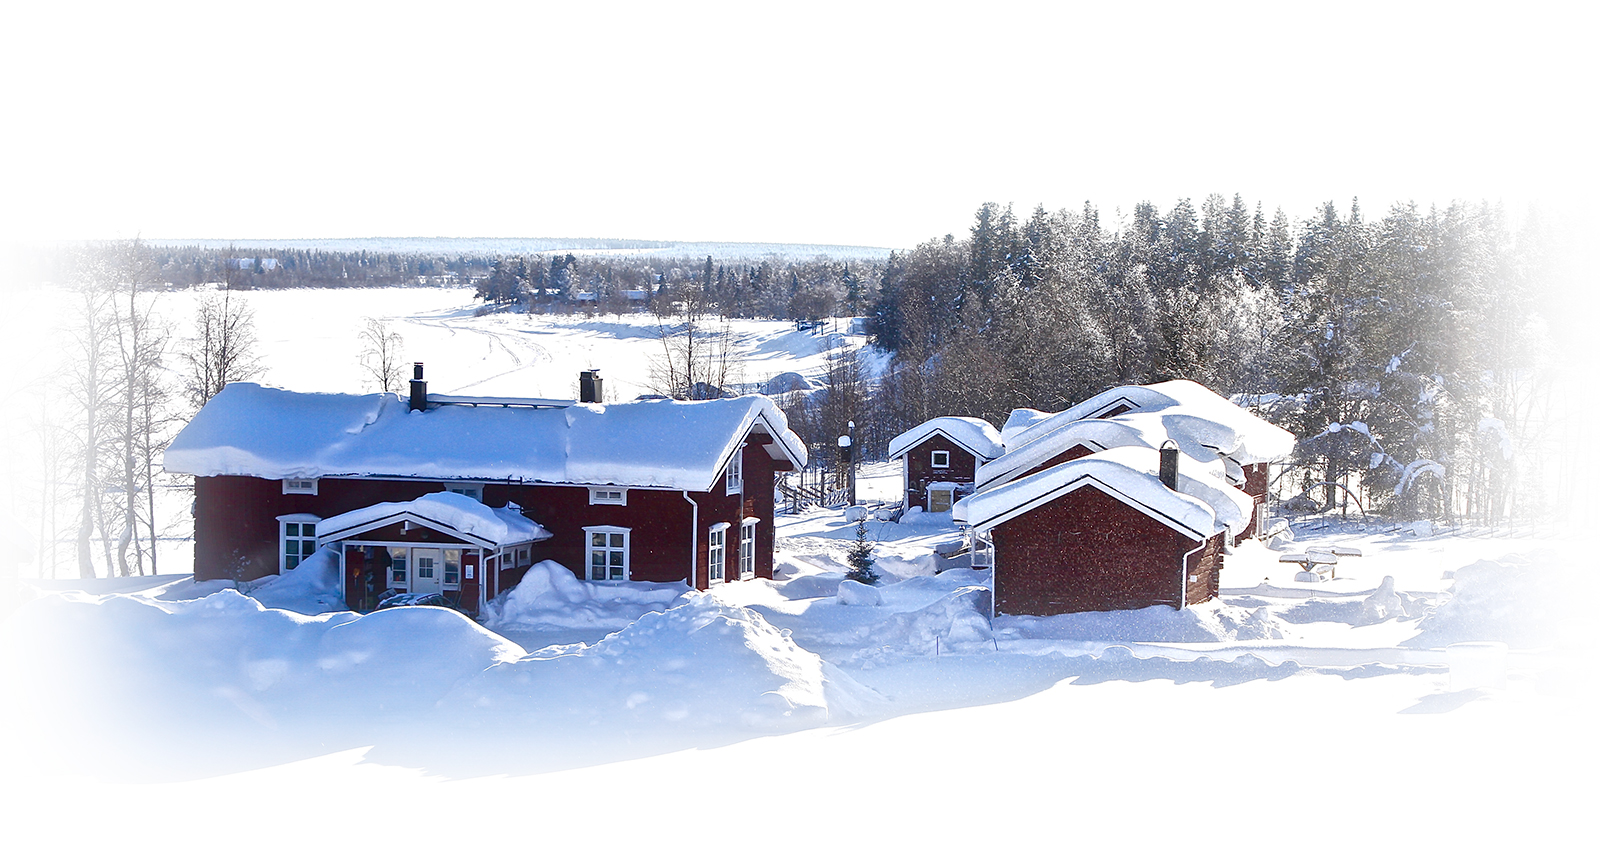 Lapland Guesthouse winter